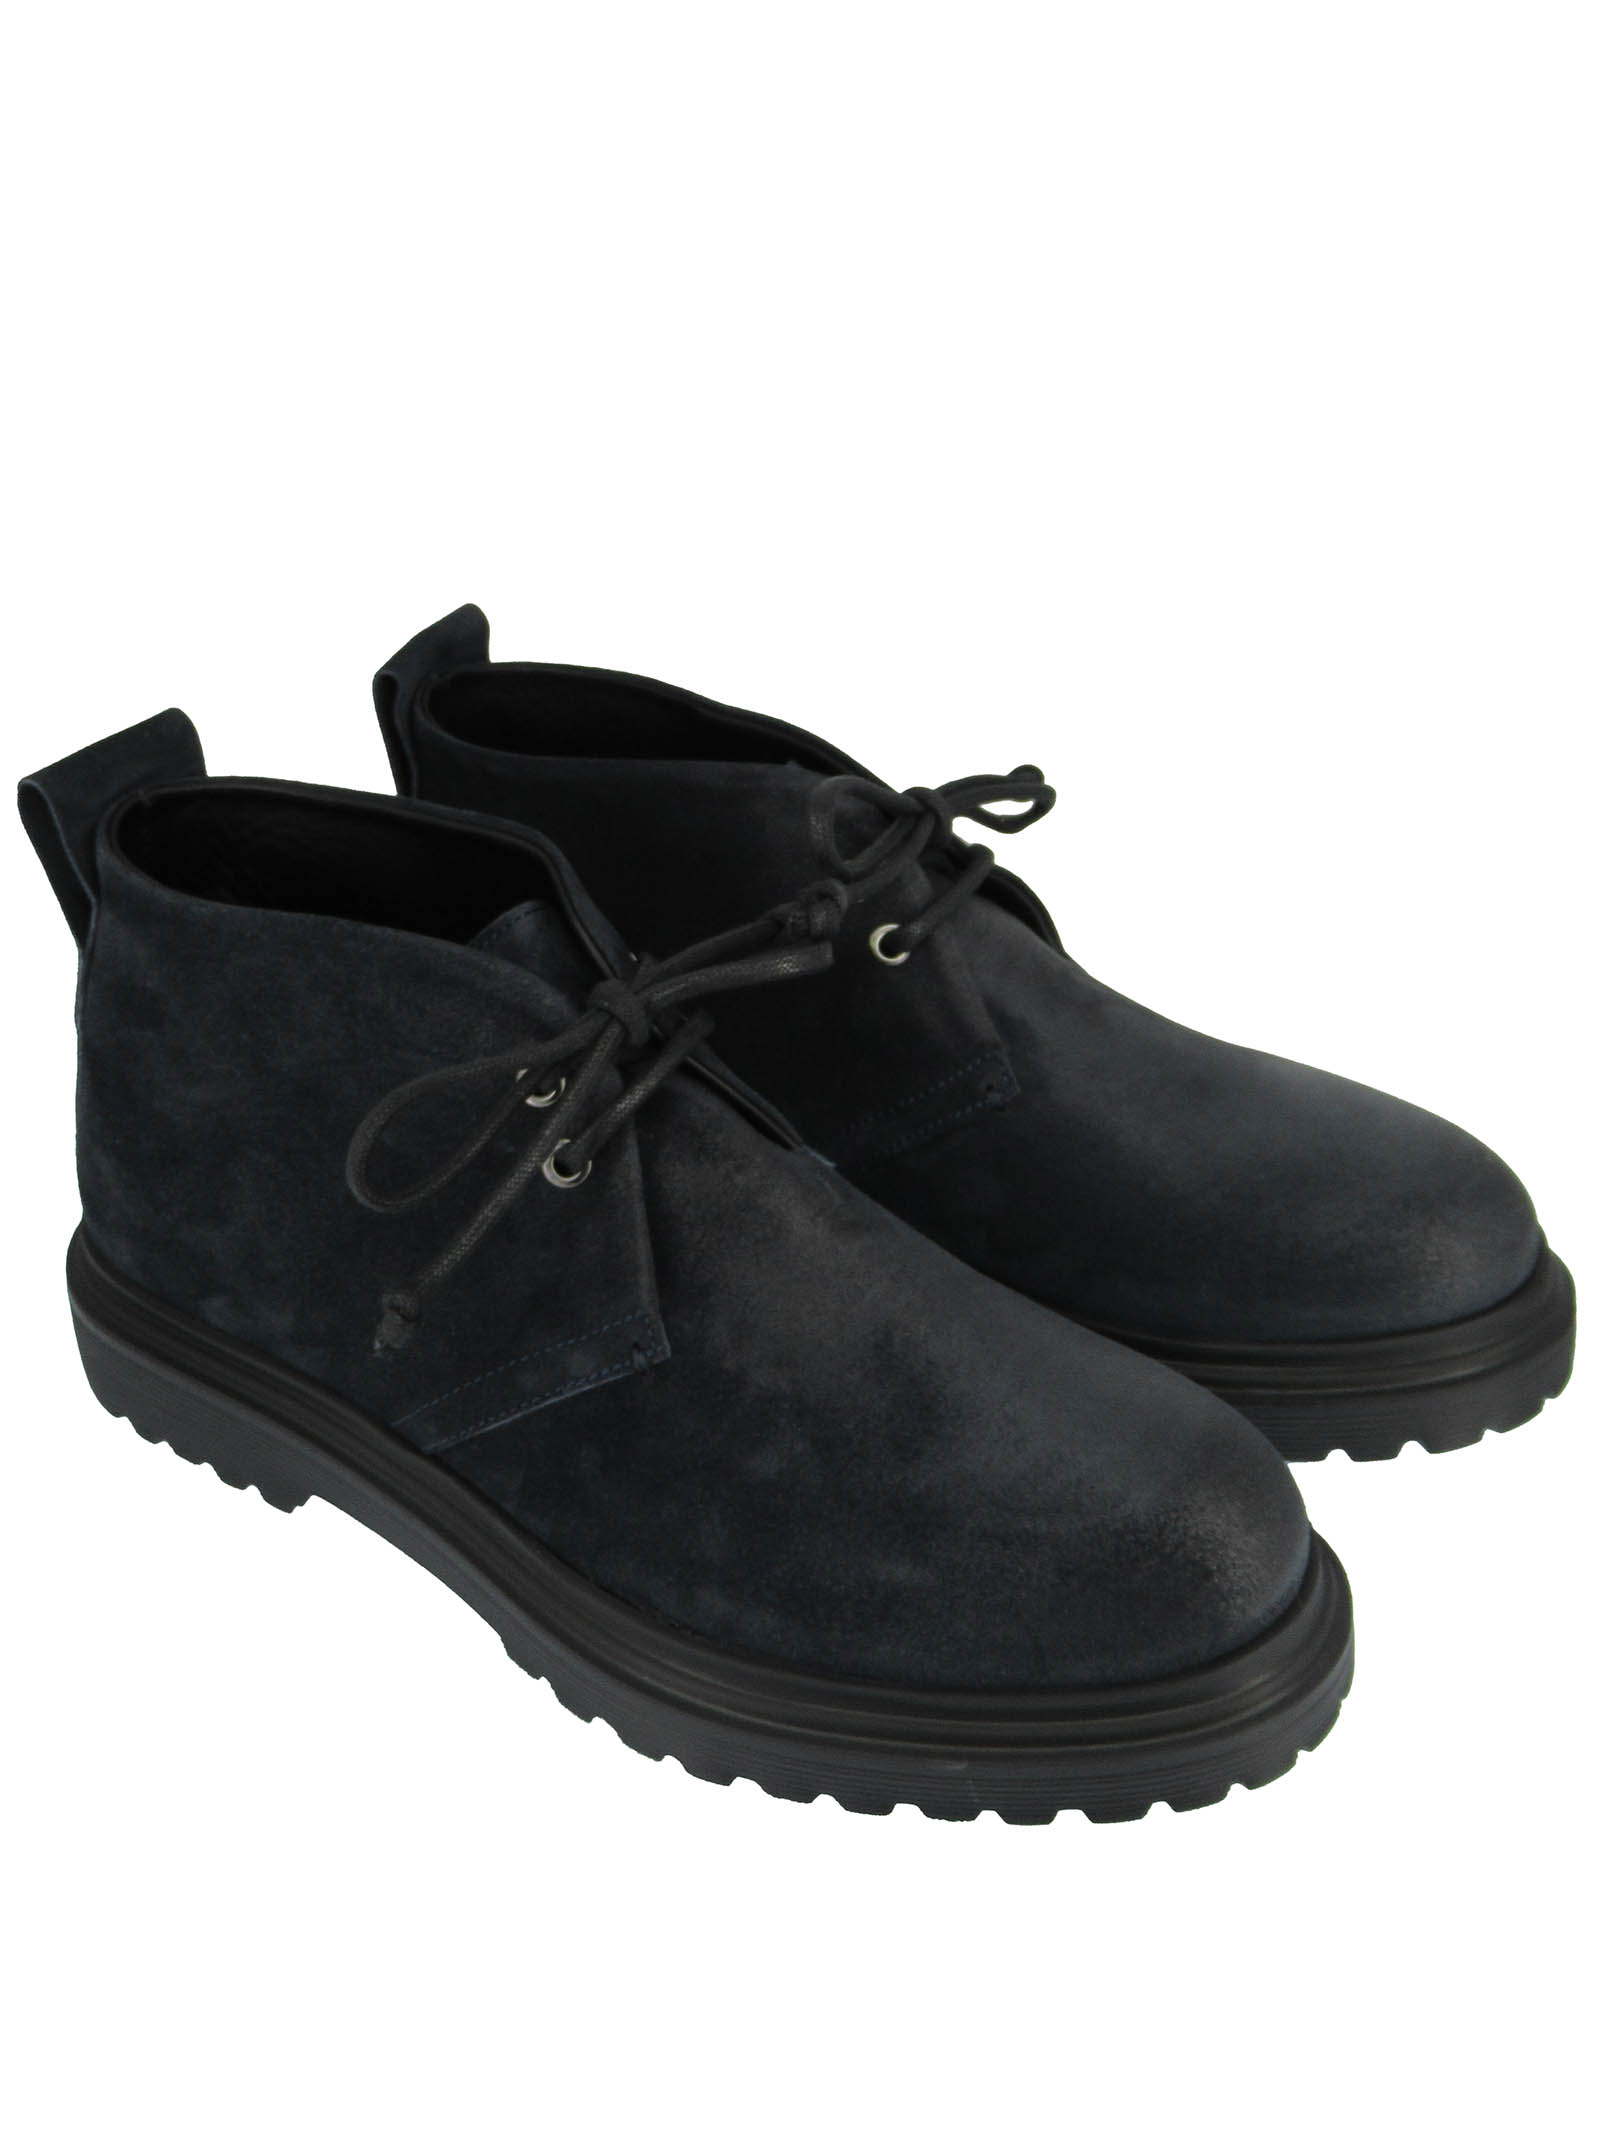 Men's Shoes Lace-up Ankle Boots in Blue Suede with Rubber Tank Sole Rogal's   Ankle Boots   MAR 14002